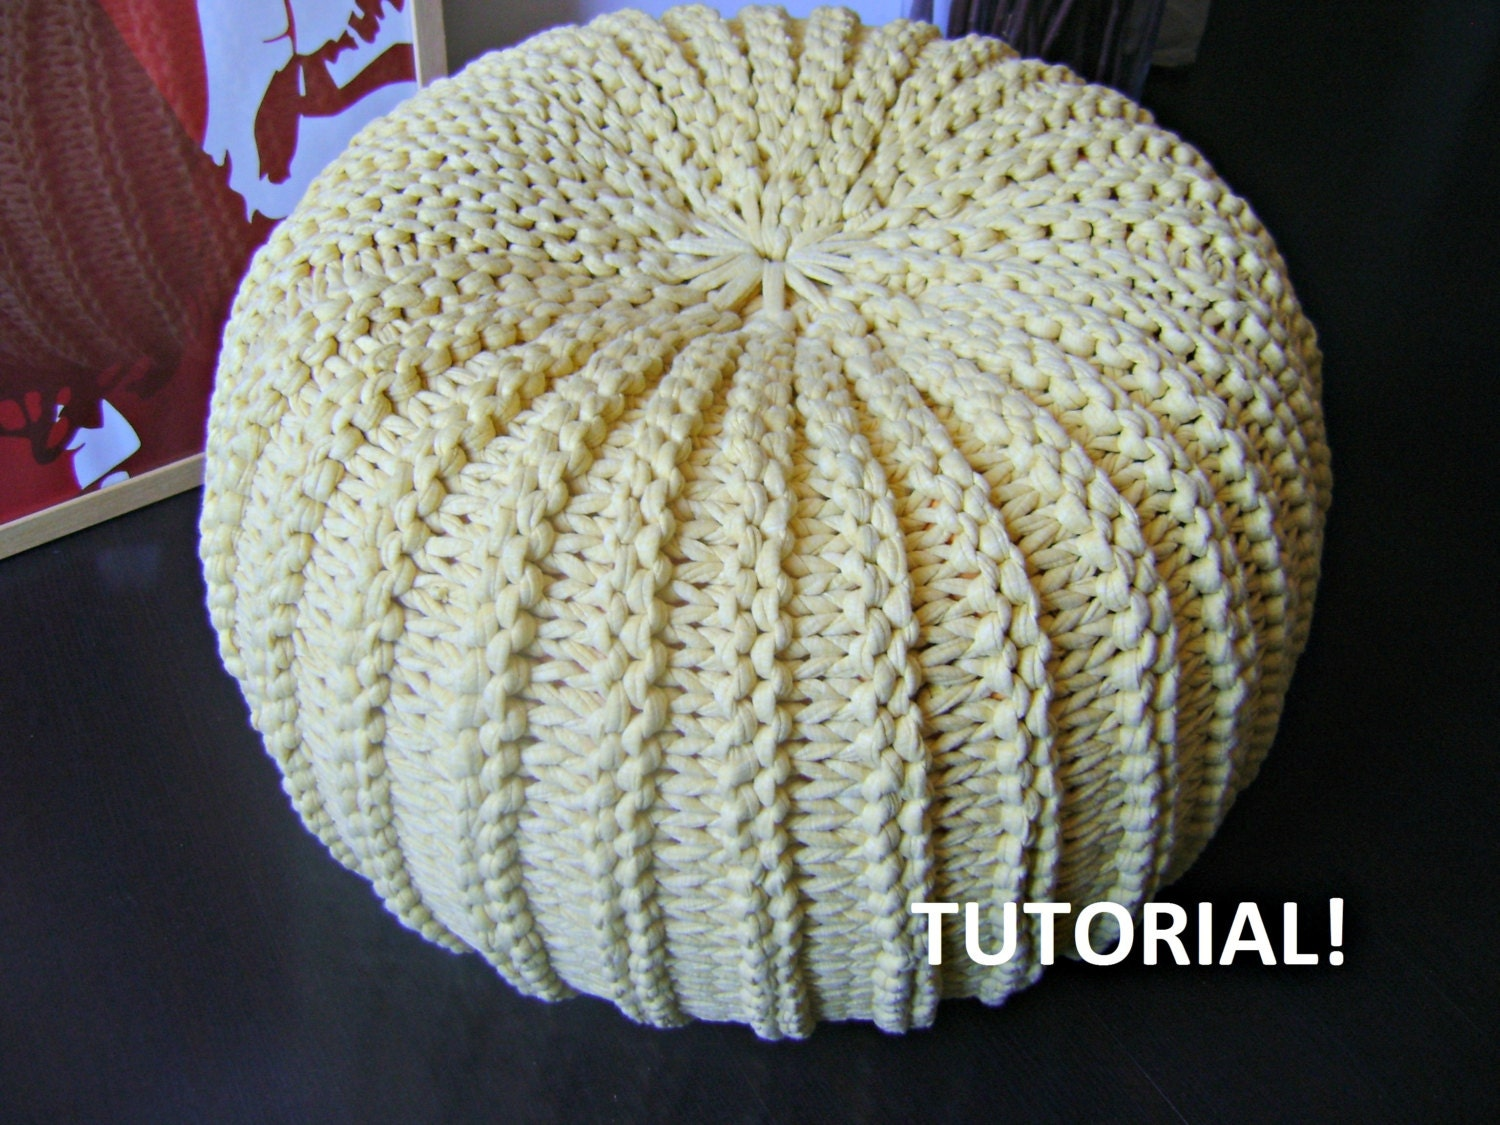 diy tutorial xxl pouf poof ottoman footstool home by iswoolish. Black Bedroom Furniture Sets. Home Design Ideas